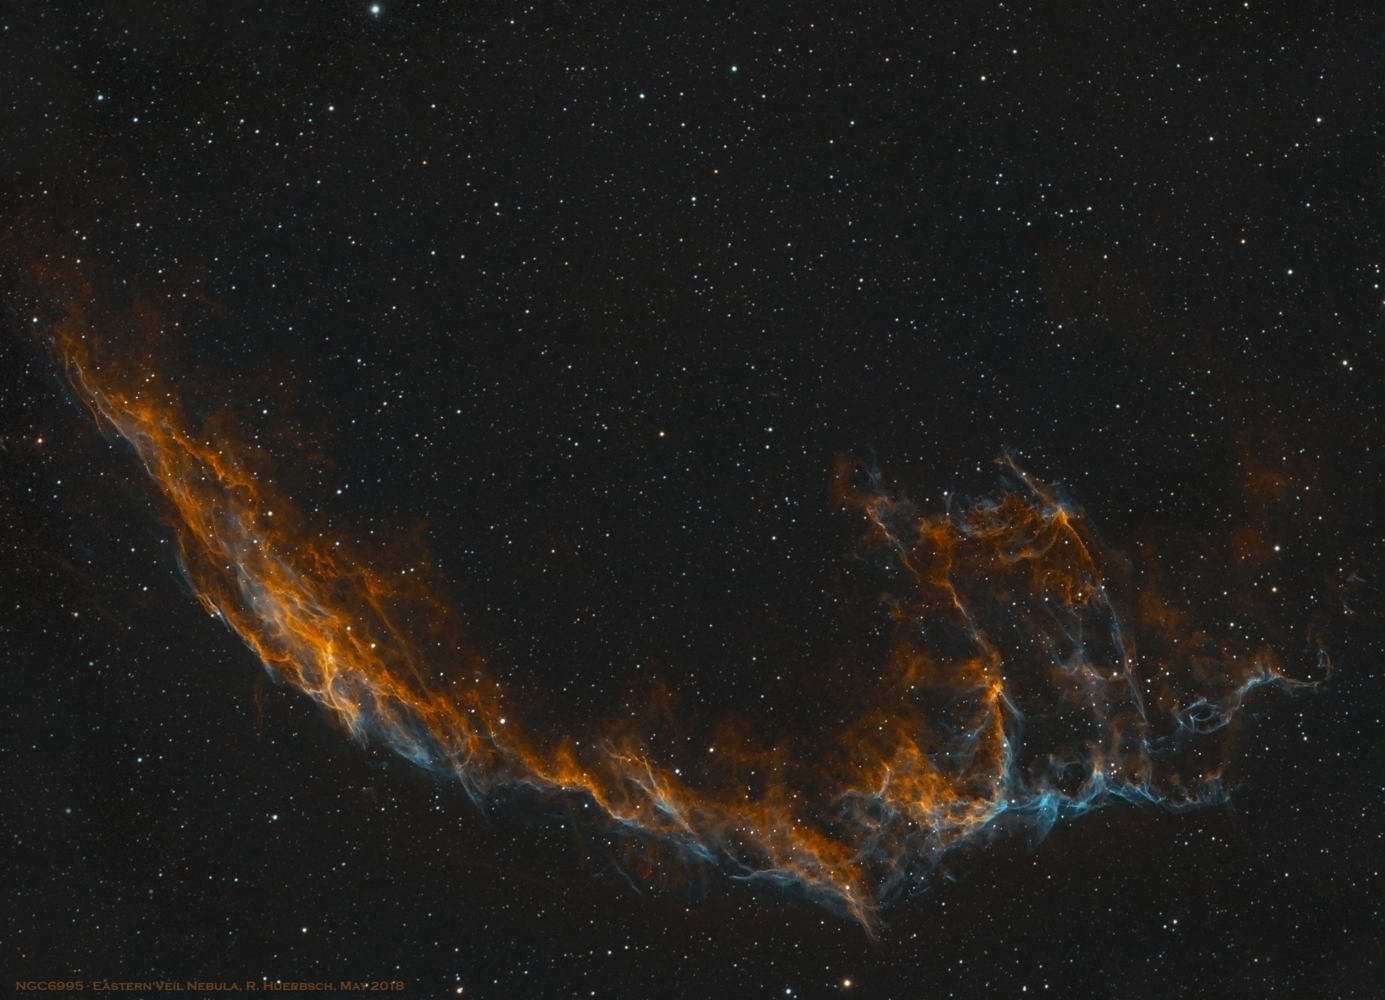 Eastern Veil Nebula by Robert Huerbsch